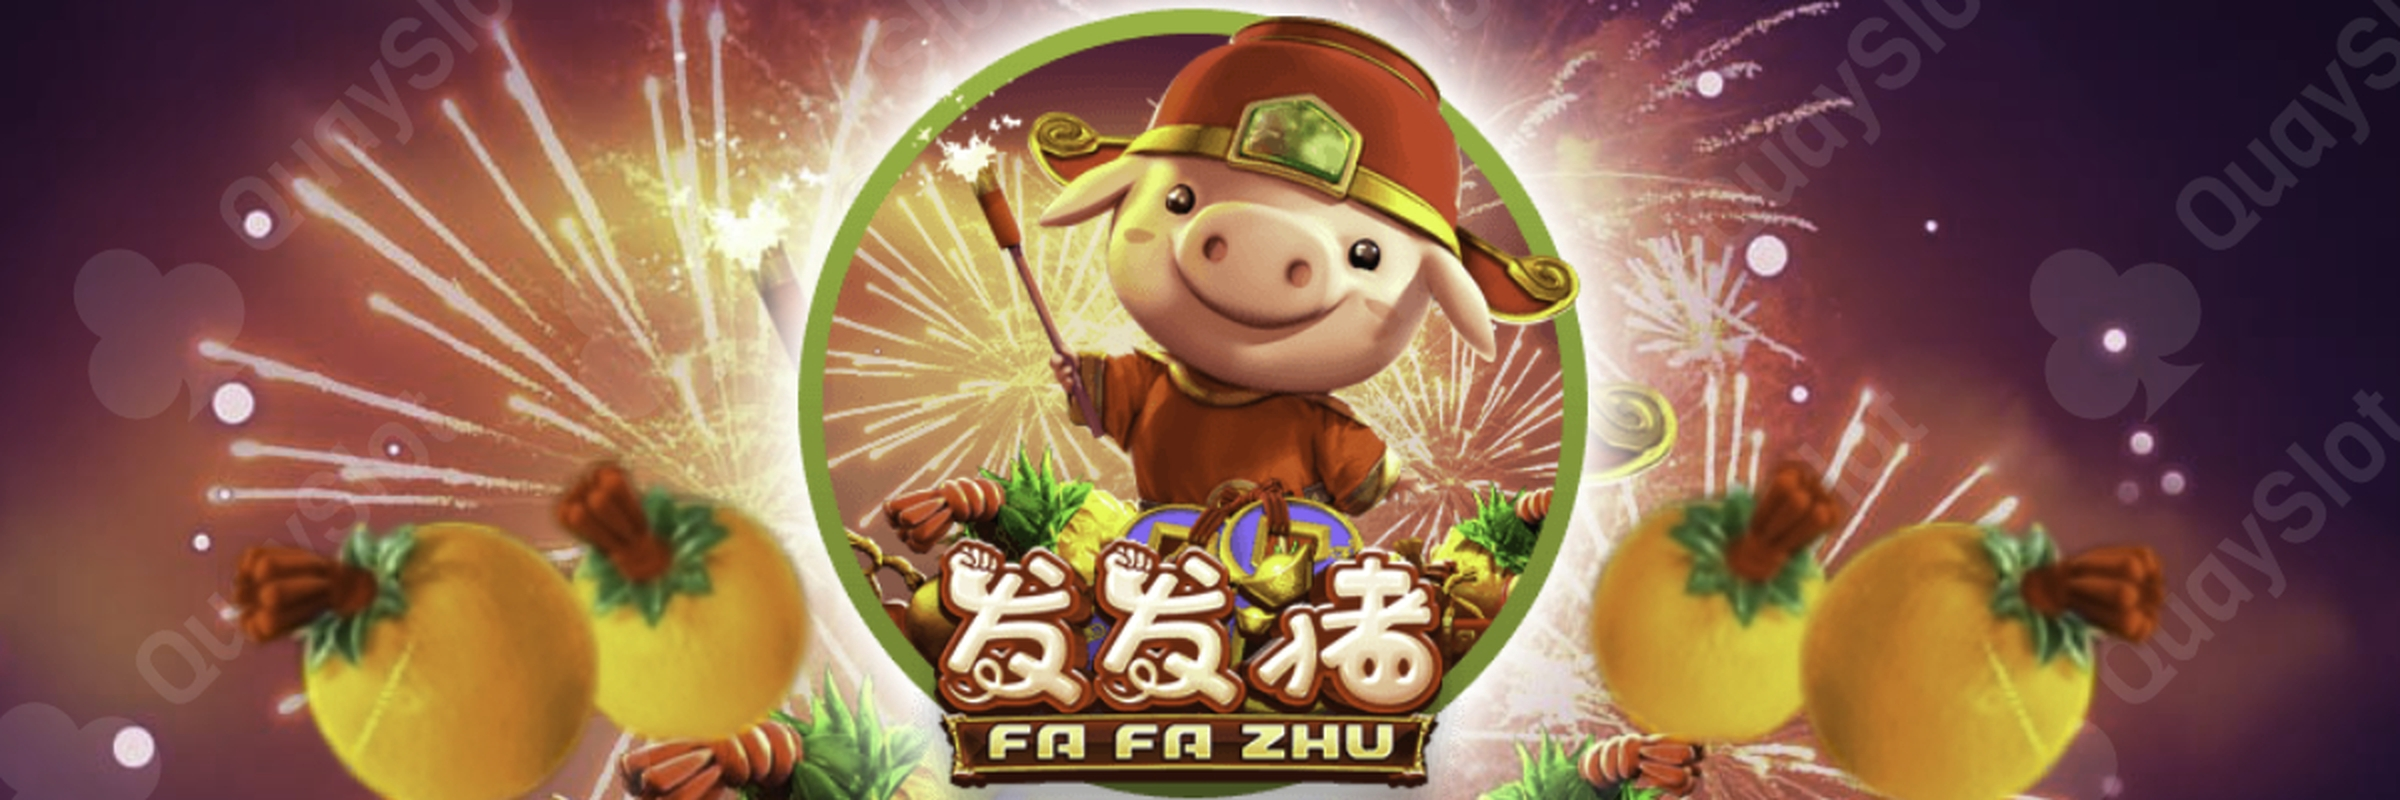 The Fa Fa Zhu Online Slot Demo Game by Gameplay Interactive